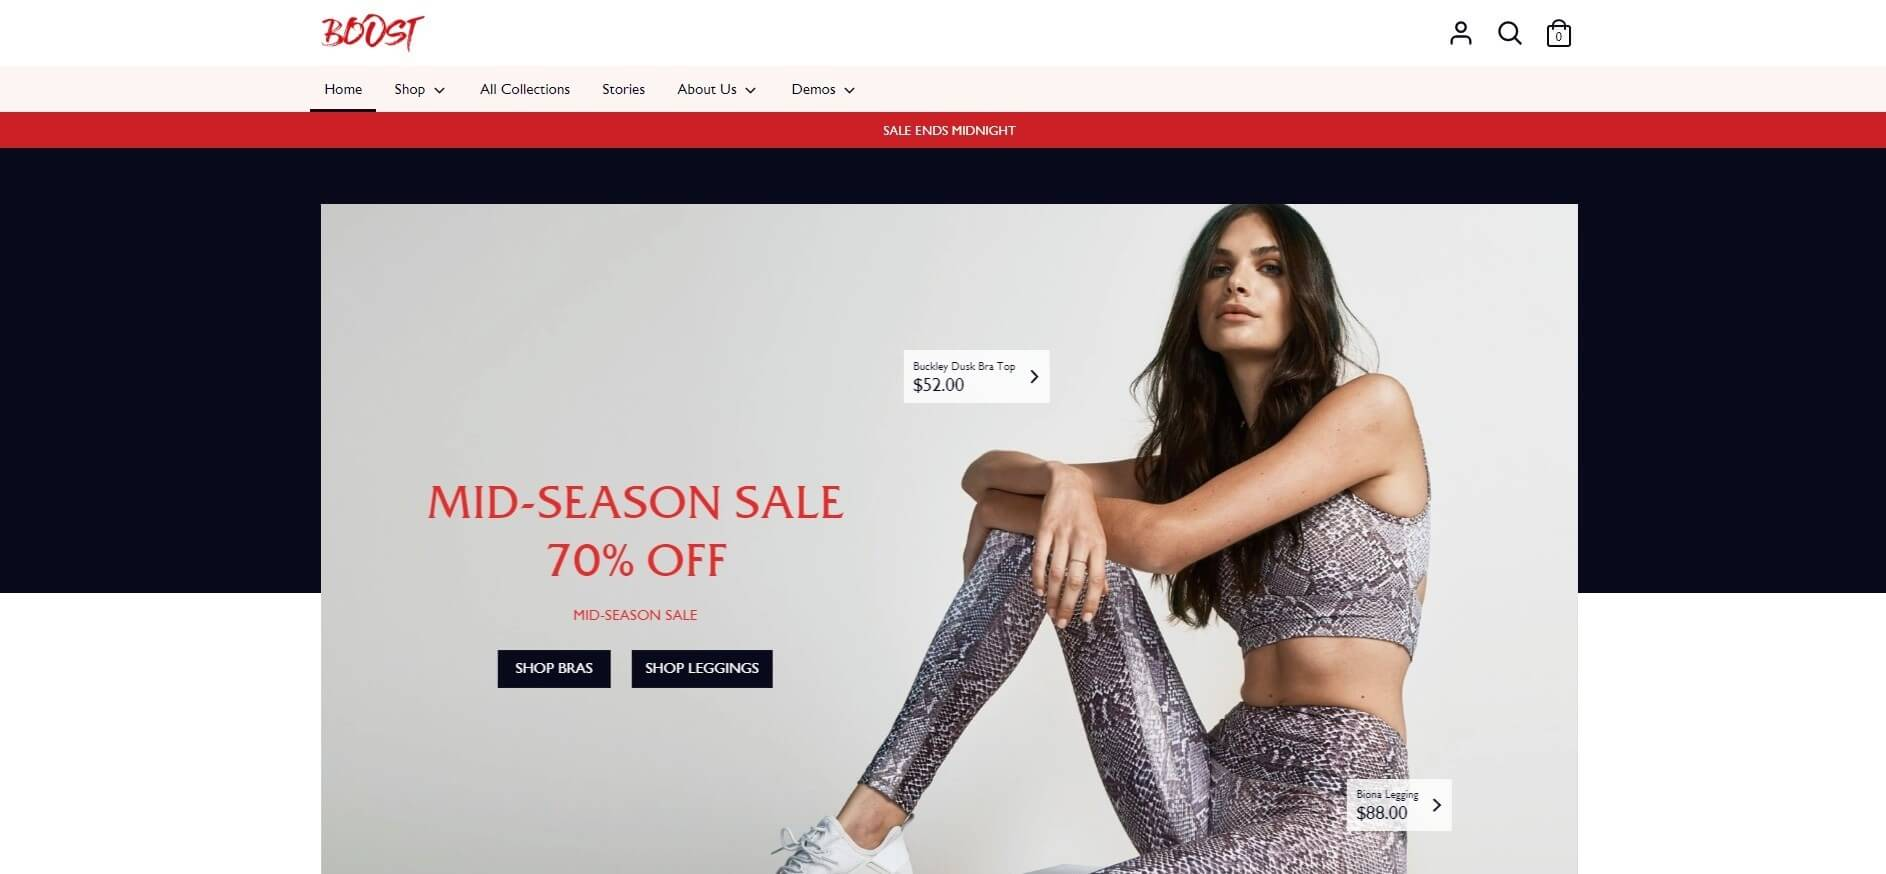 Screenshot of Boost professional Shopify theme - TRY FOR FREE – BOOST - a premium Shopify e-commerce theme (1) (1) (1)